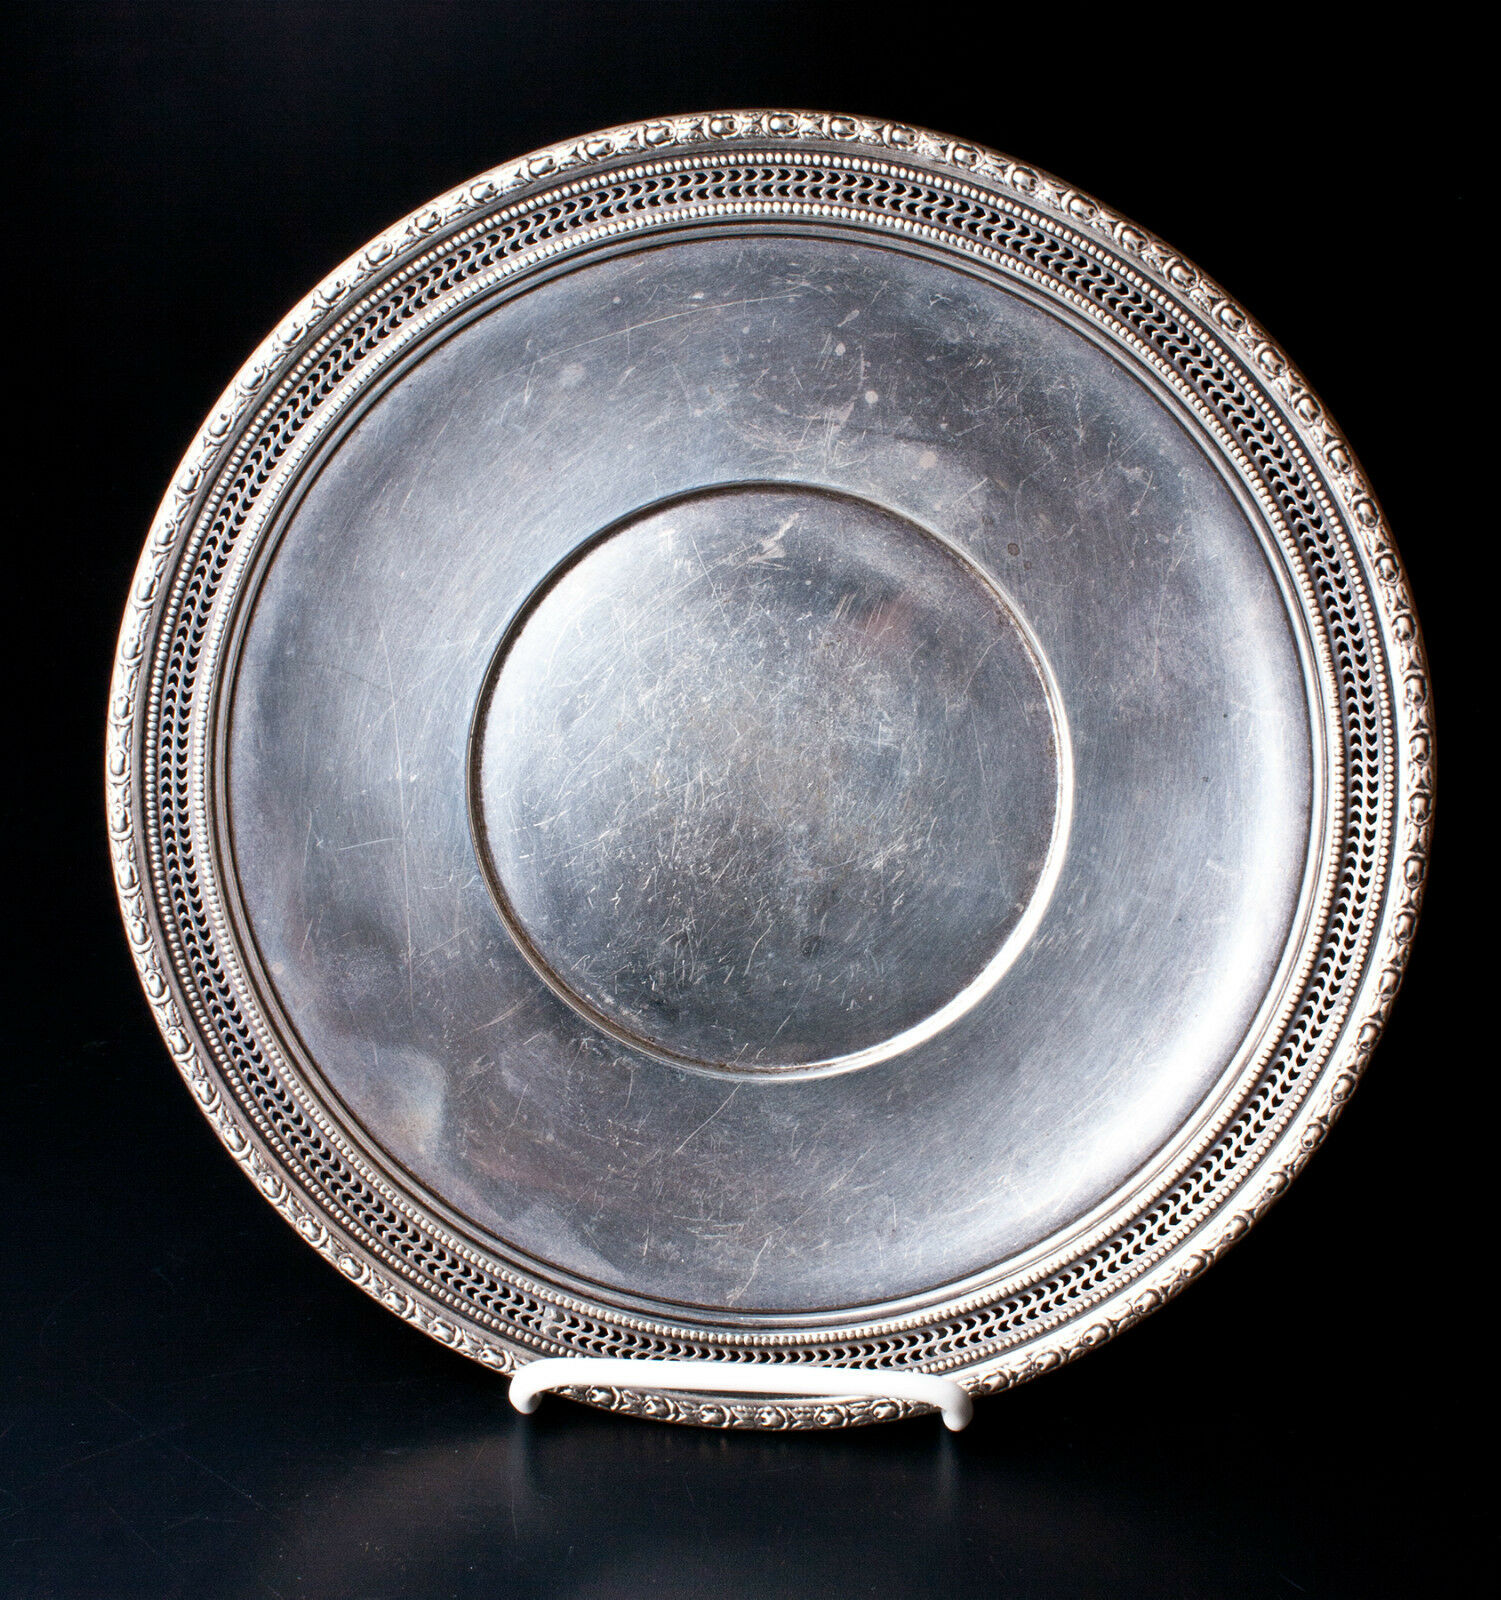 Frank m whiting talisman rose 494 sterling silver plate for Coin and jewelry exchange pleasant hill